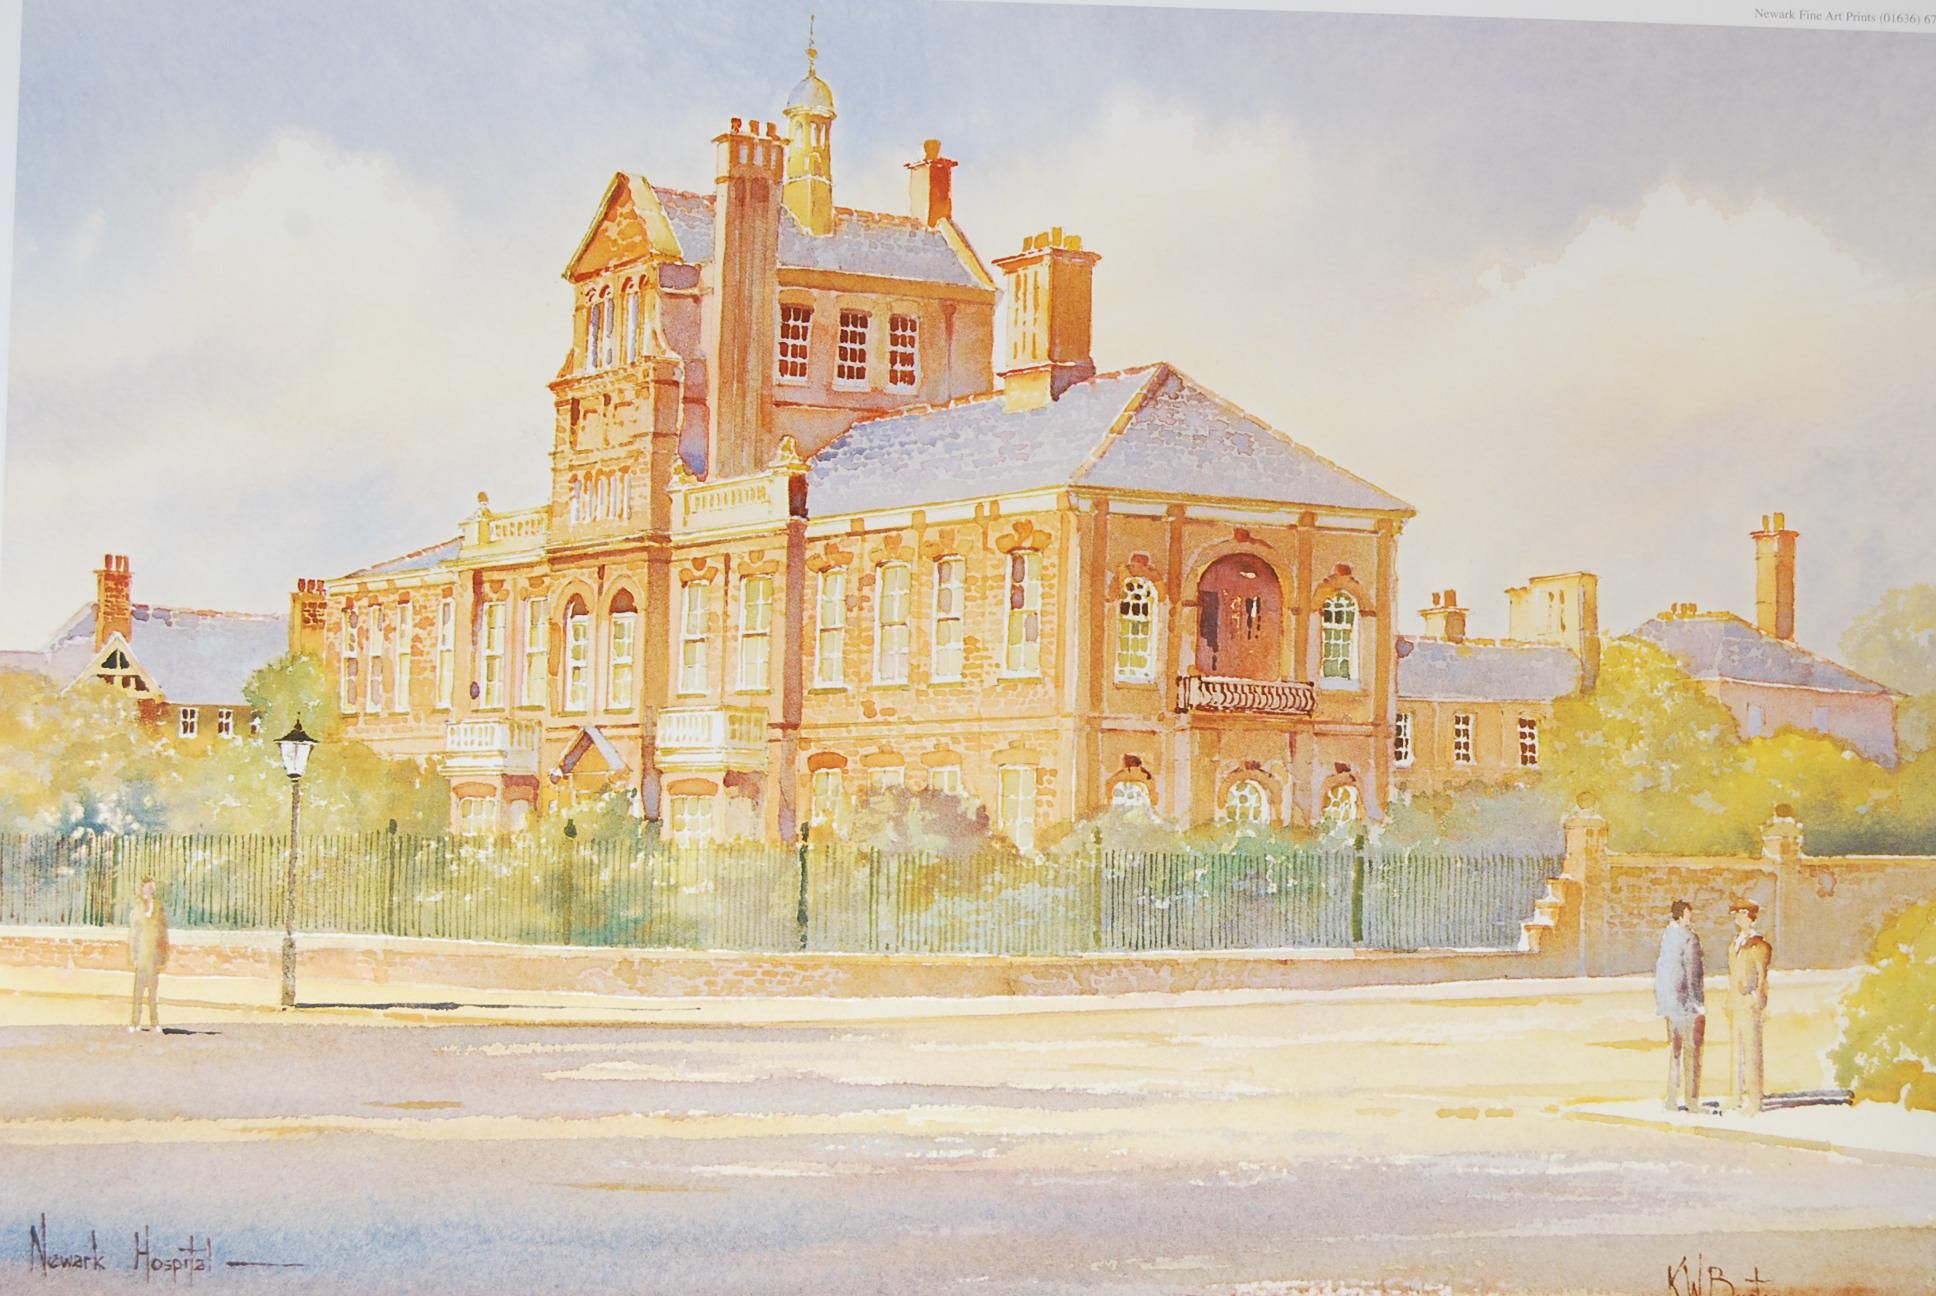 Old Newark Hospital by KW Burton